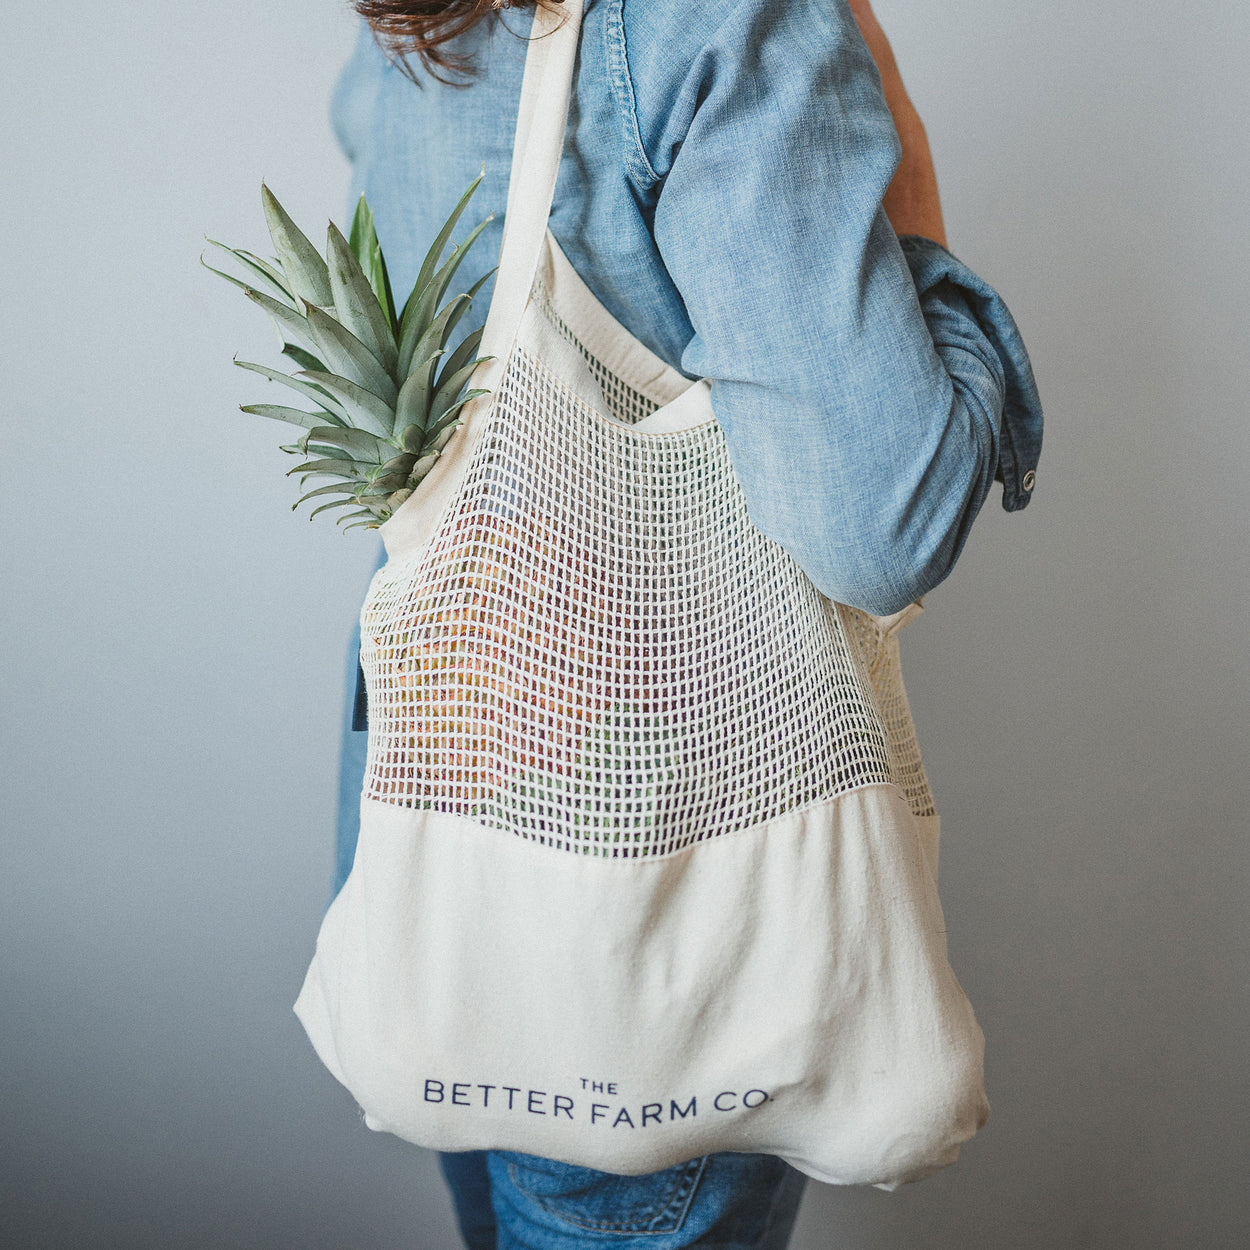 The Better Farm Co's Perfect Blend Bags are shown slung over a woman's shoulder, with produce and bulk goods held inside. The organic, sturdy, zero-waste and reusable canvas bottom keeps your groceries tucked away where they should be, without tops poking out of your string bag. This bag is pretty, practical, and eco friendly-your new sustainable grocery store companion.